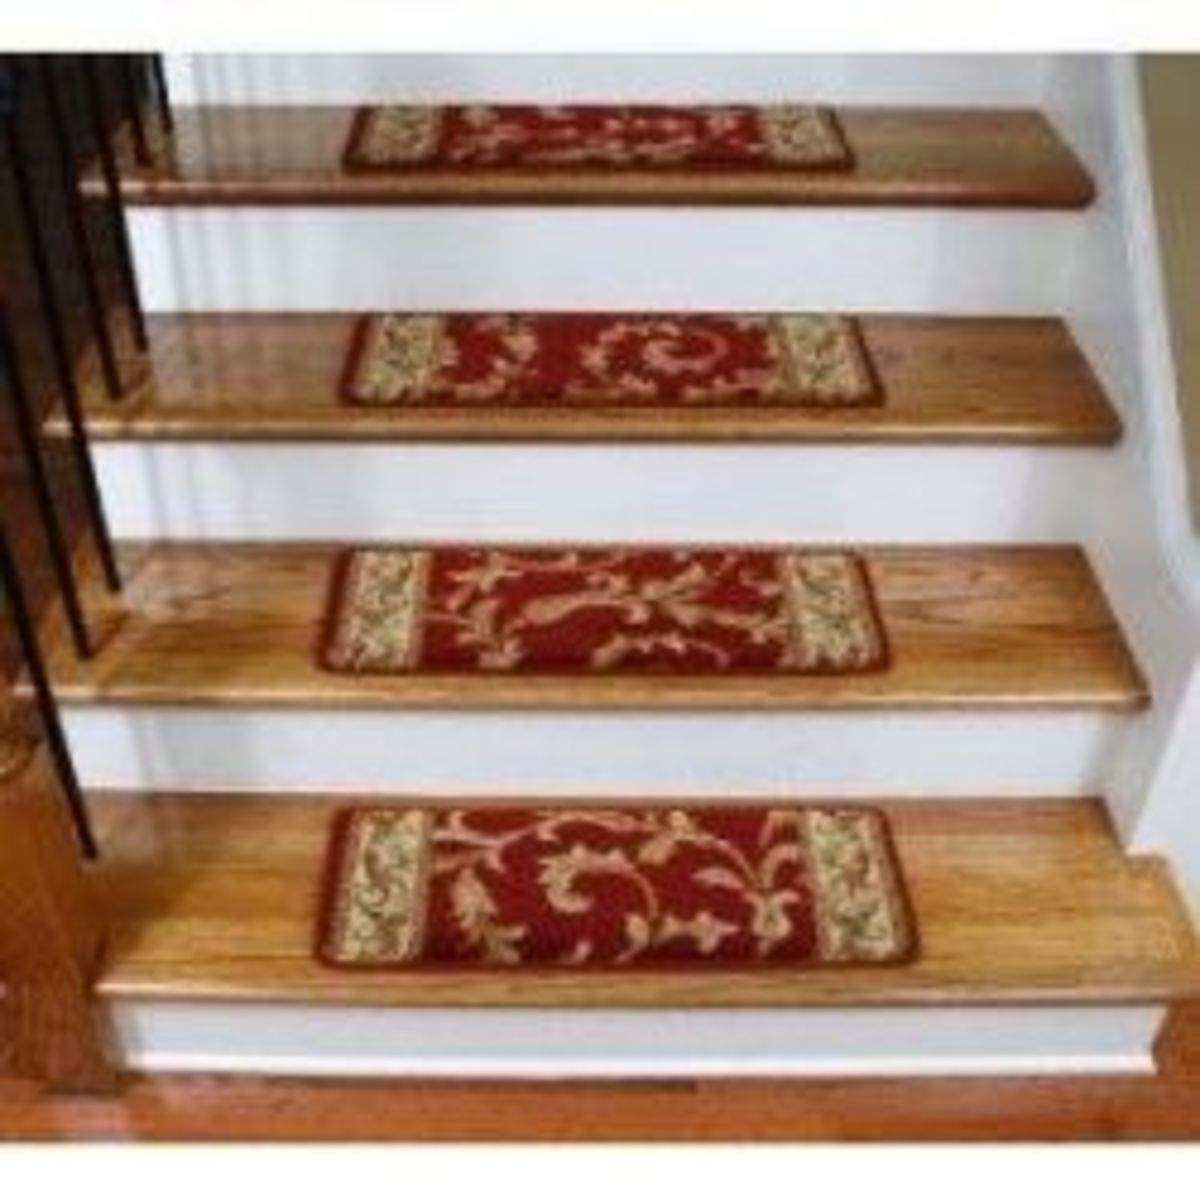 Premium Carpet Stair Treads - Red Scrollworks